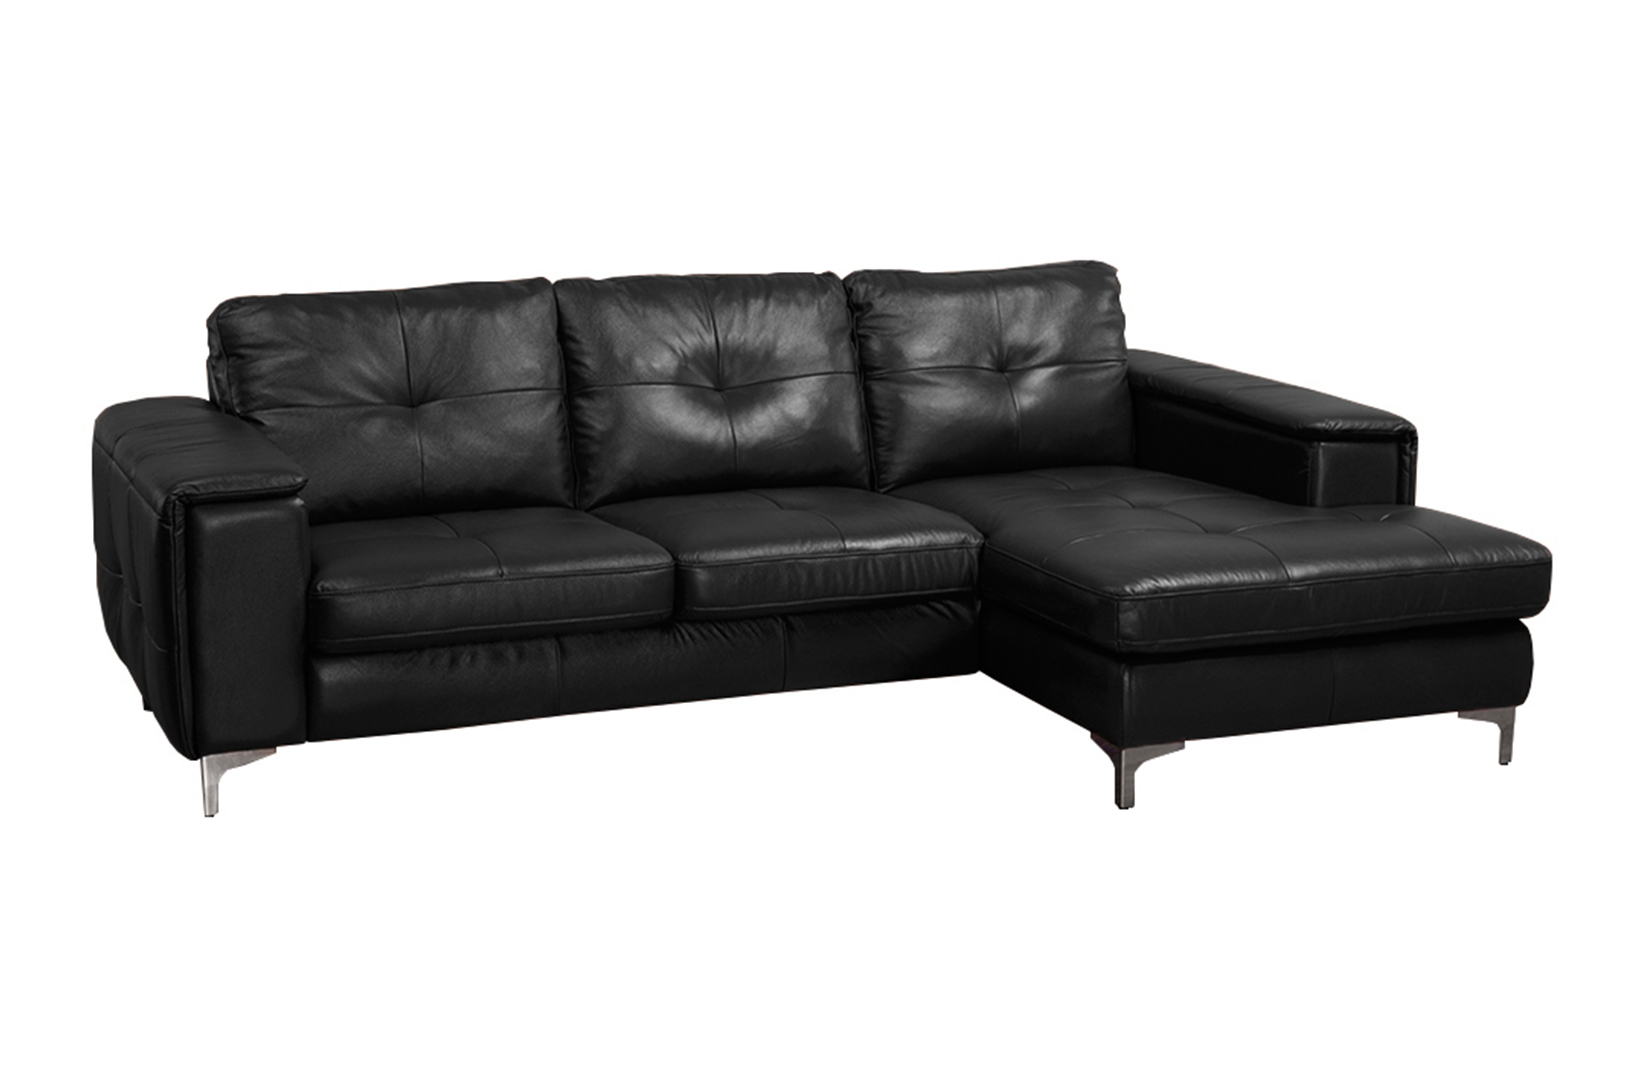 Sofa Frankfurt Frankfurt Sectional Mountain Black Nordholtz Furniture